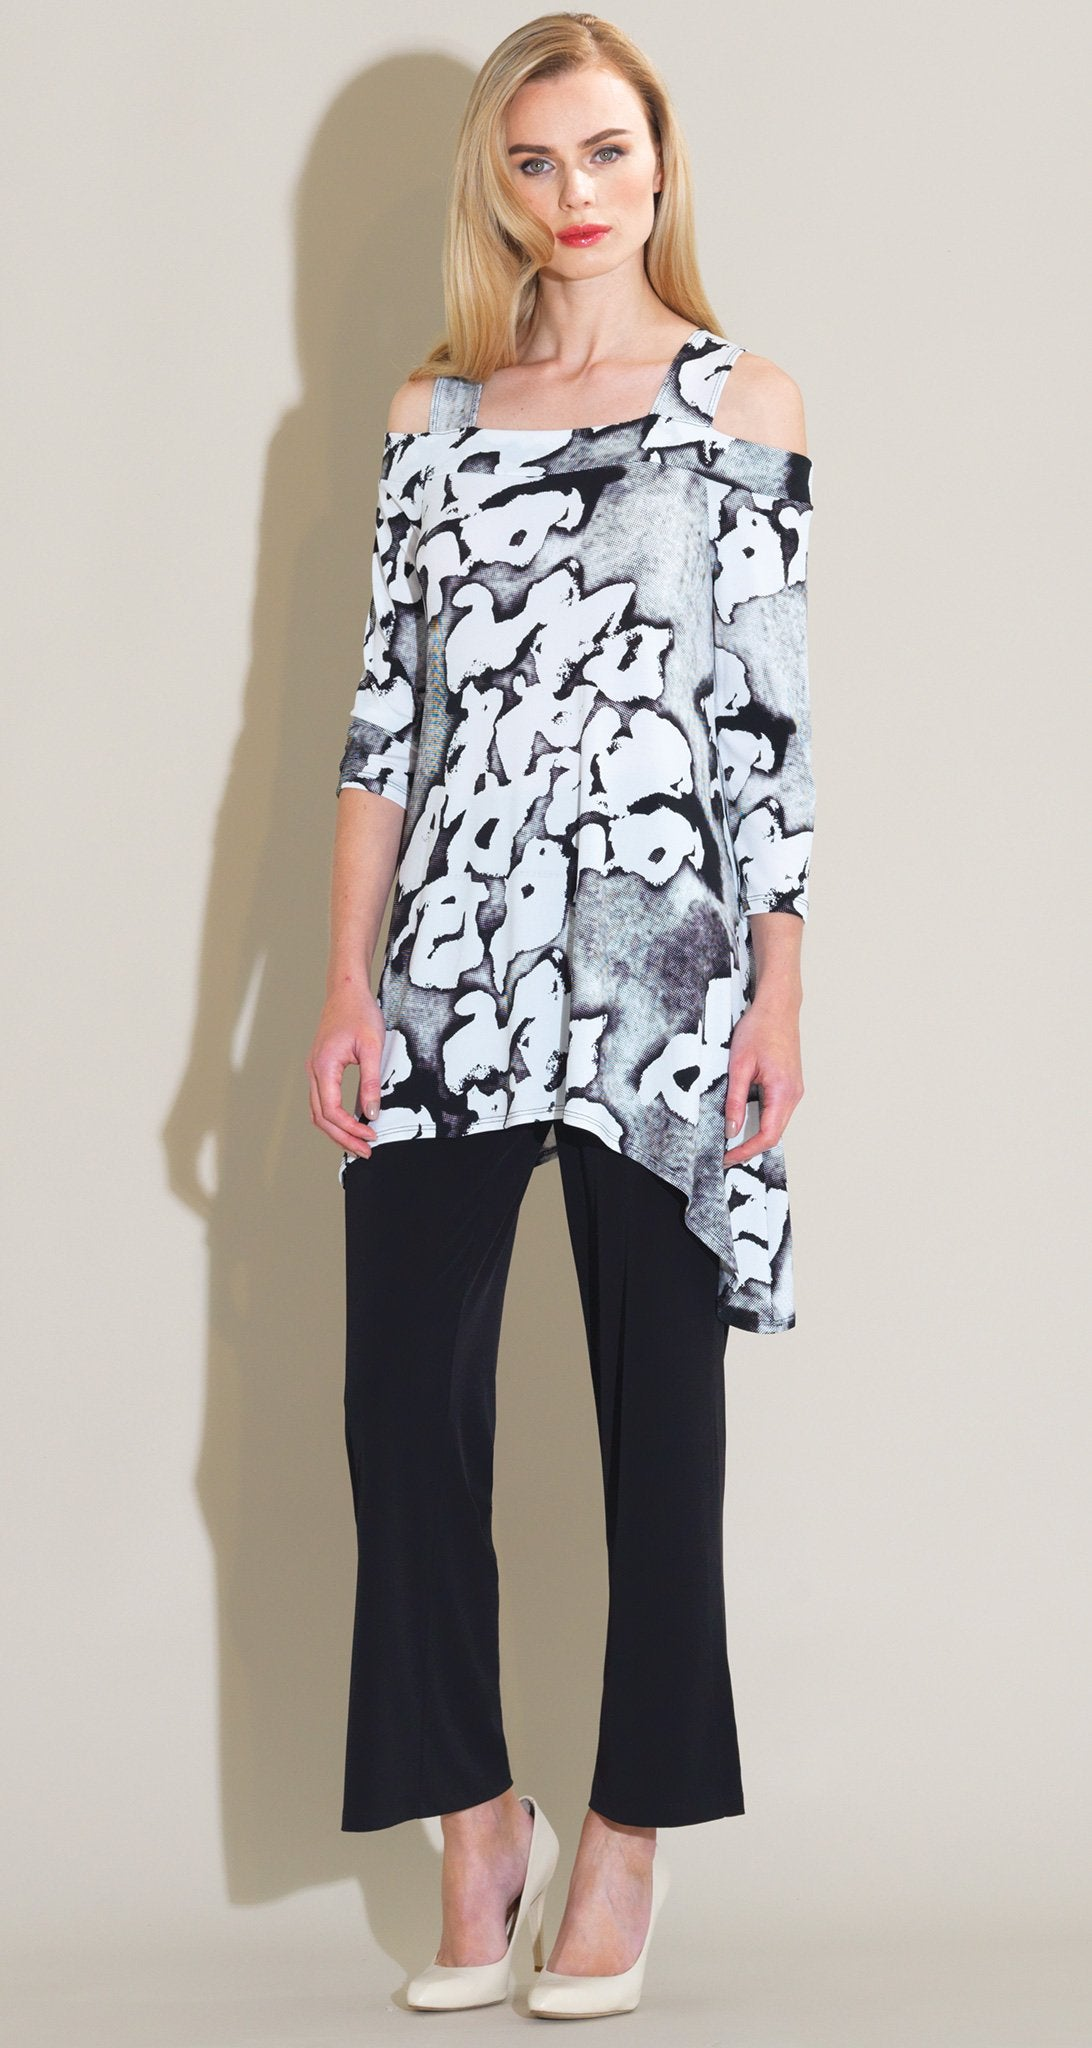 Abstract Print Cold Shoulder Tunic - White/Black - Final Sale! - Clara Sunwoo